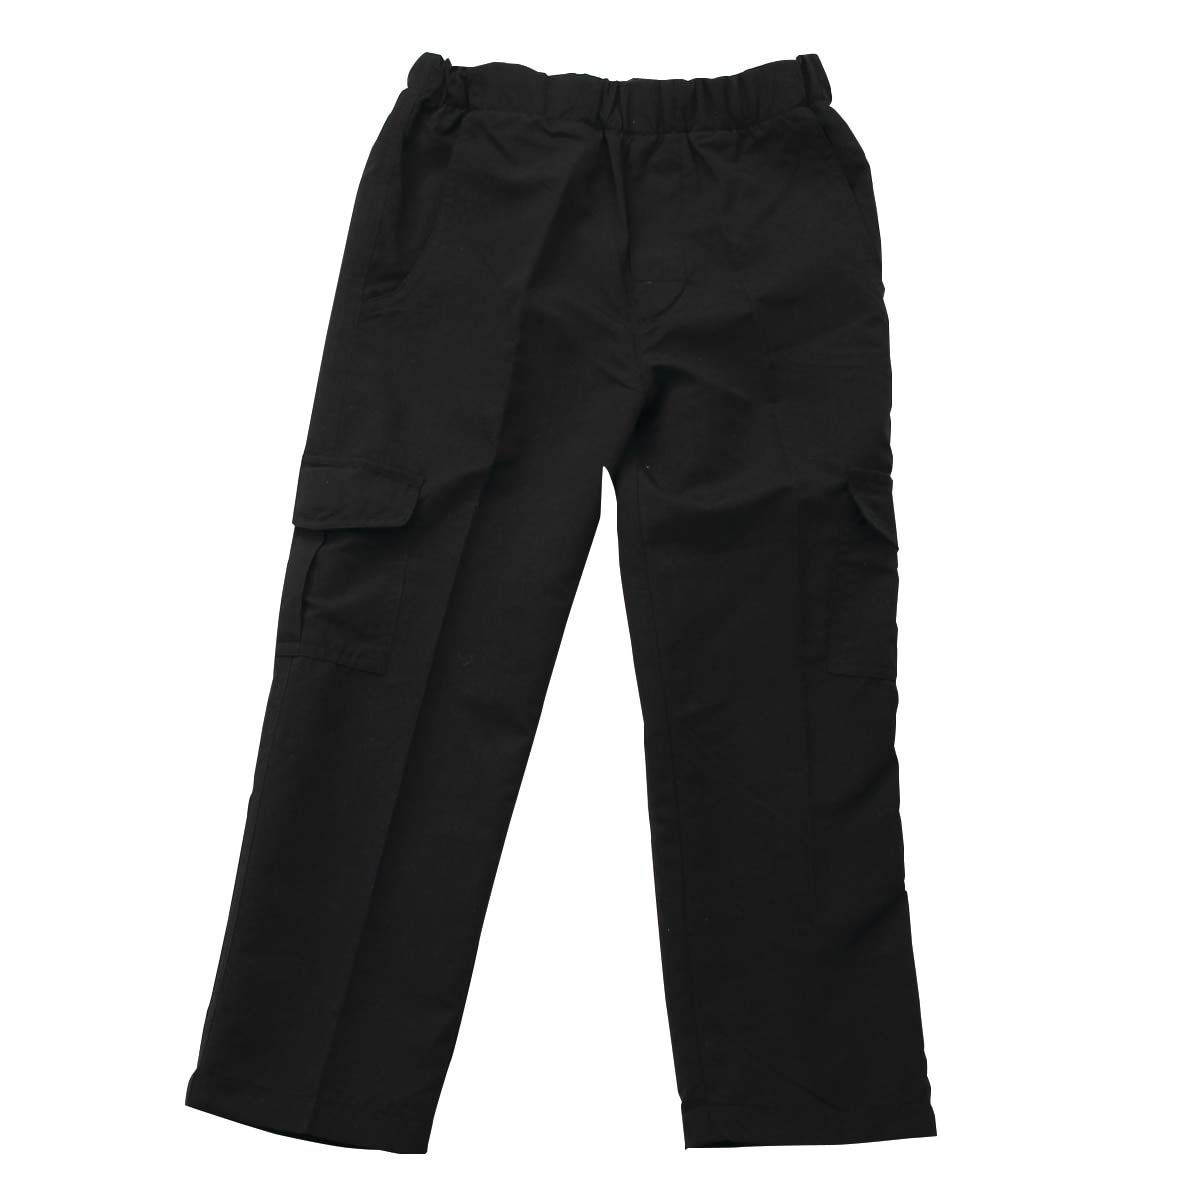 Wes and Willy Black Pull On Cargo Pant